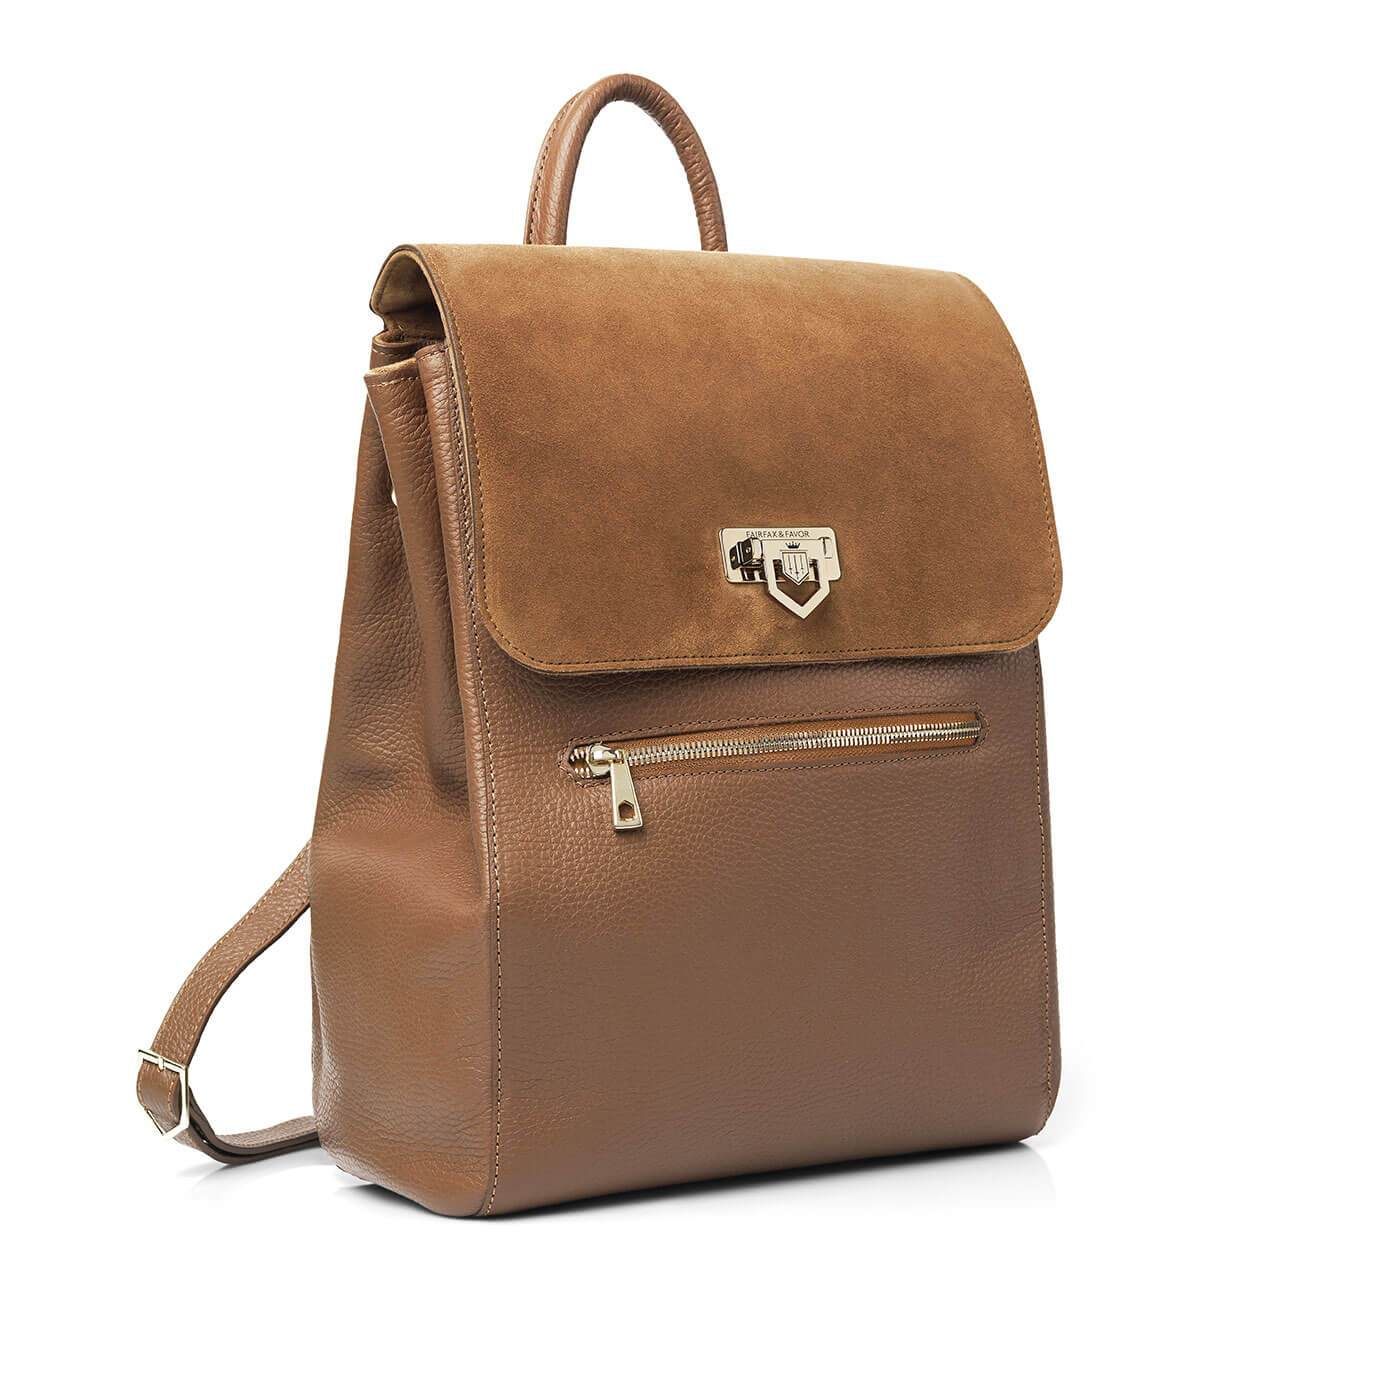 Fairfax and Favor Loxley Backpack for Ladies in Tan